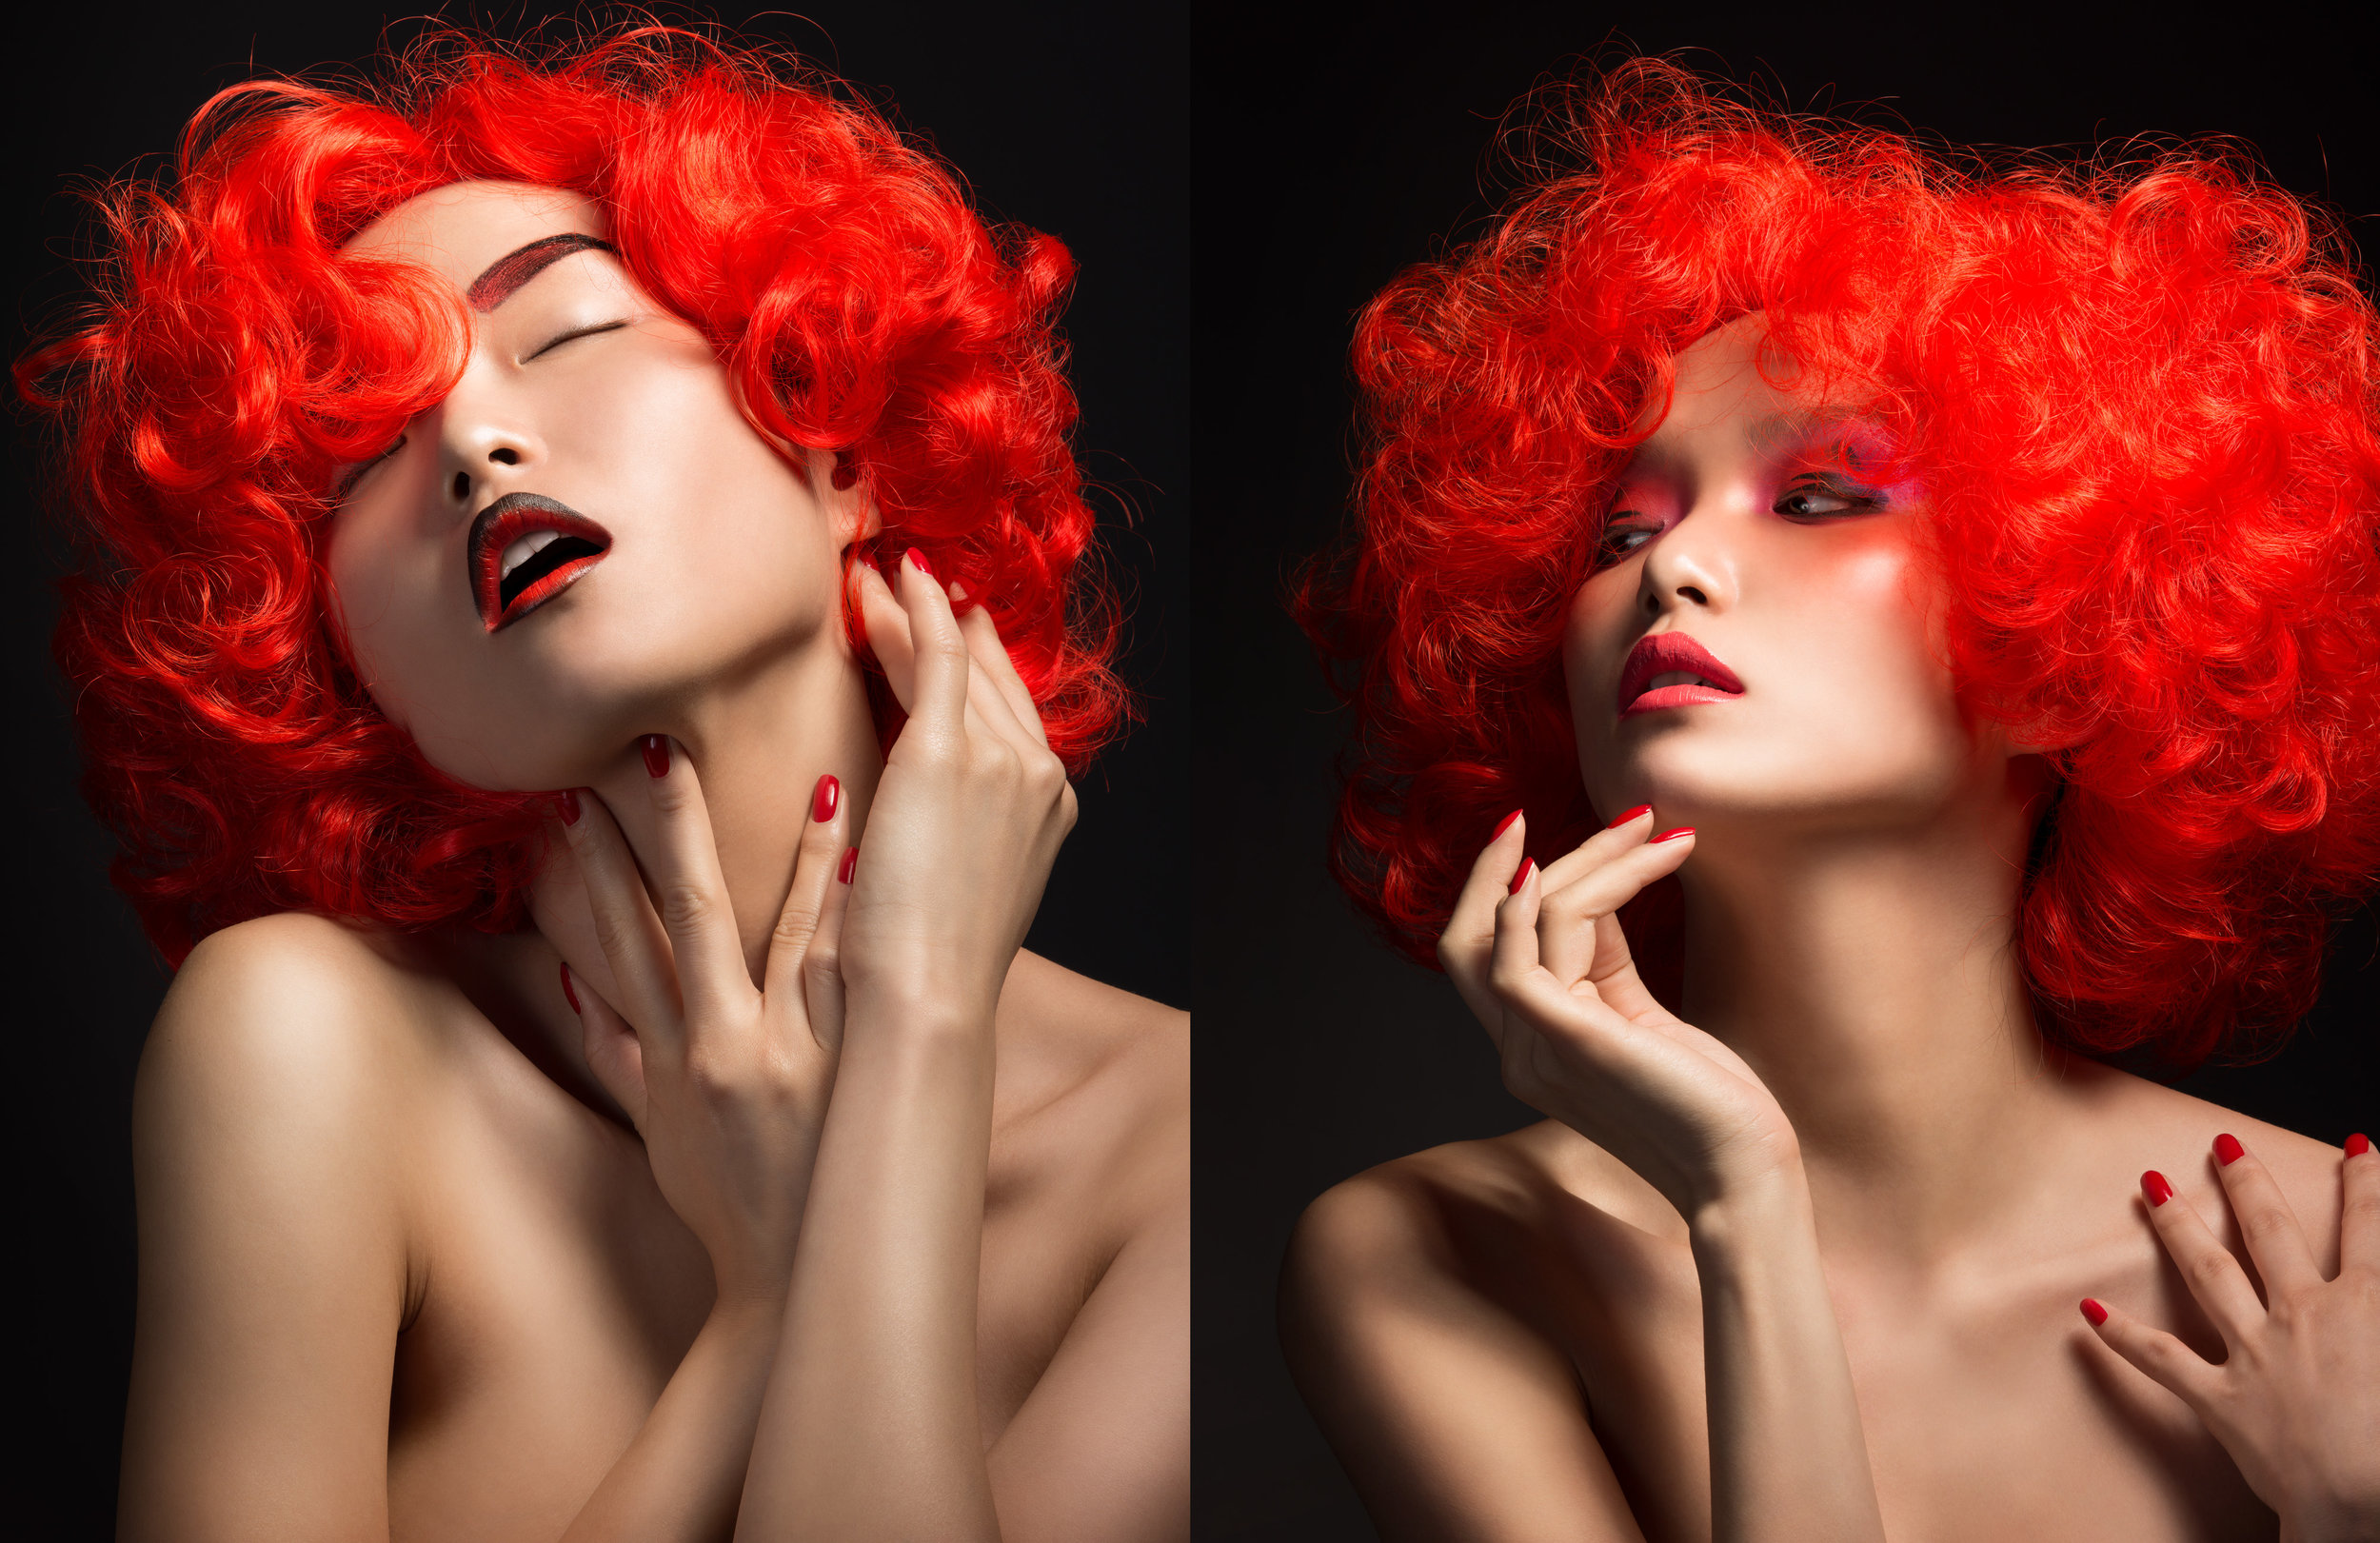 dior-red-hair-asian-model-fashion-photographer-advertising-photography-stan-musilek